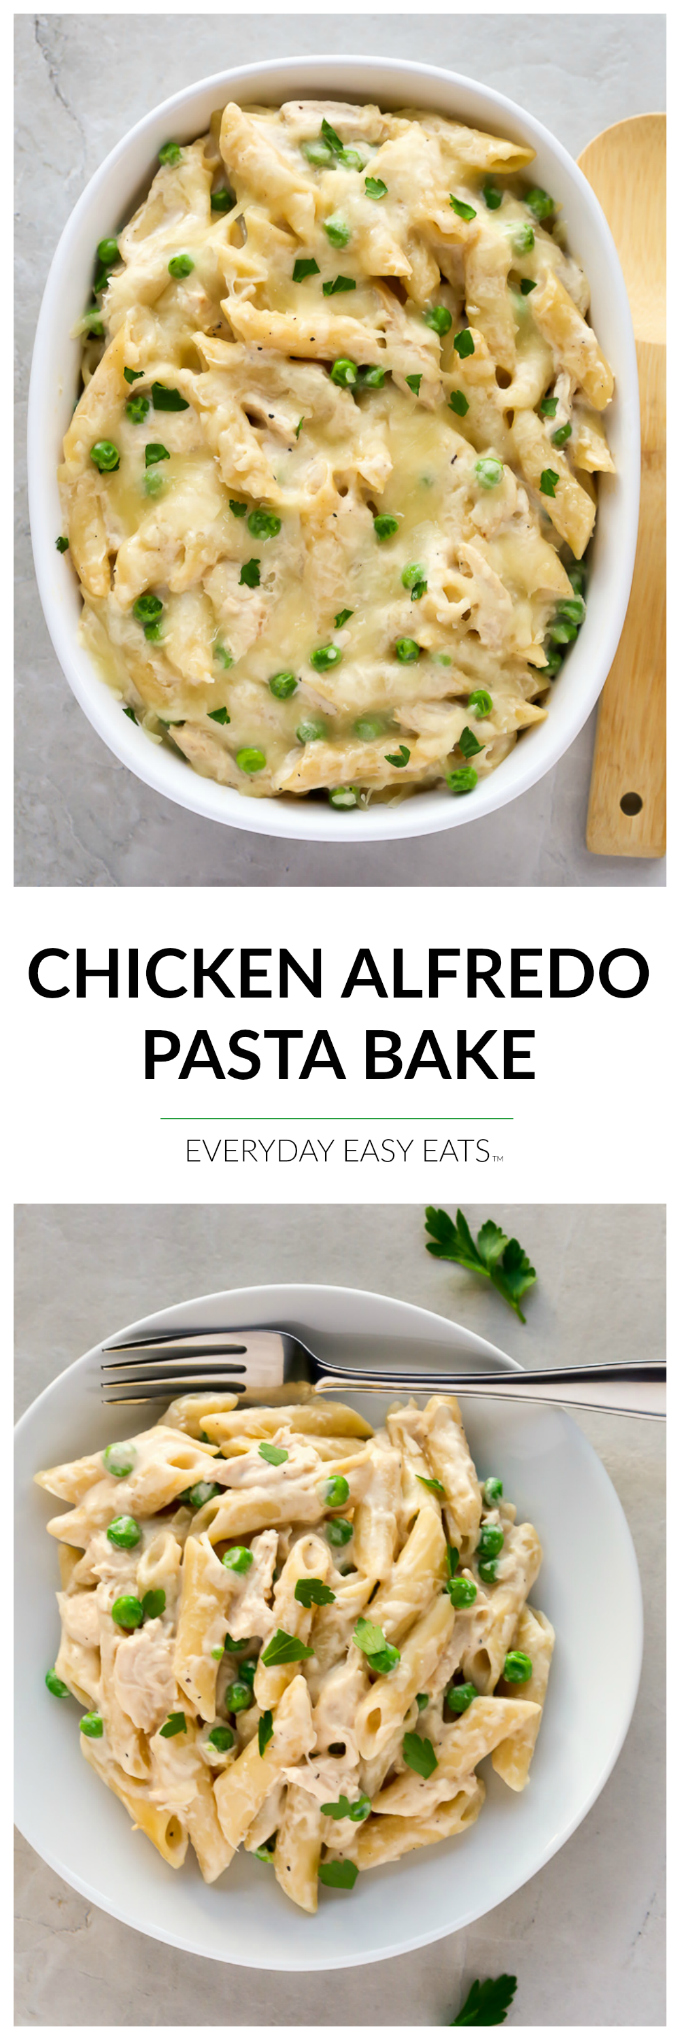 This Chicken Alfredo Pasta Bake recipe requires only 6 ingredients and is ready to eat in about a half an hour!   EverydayEasyEats.com